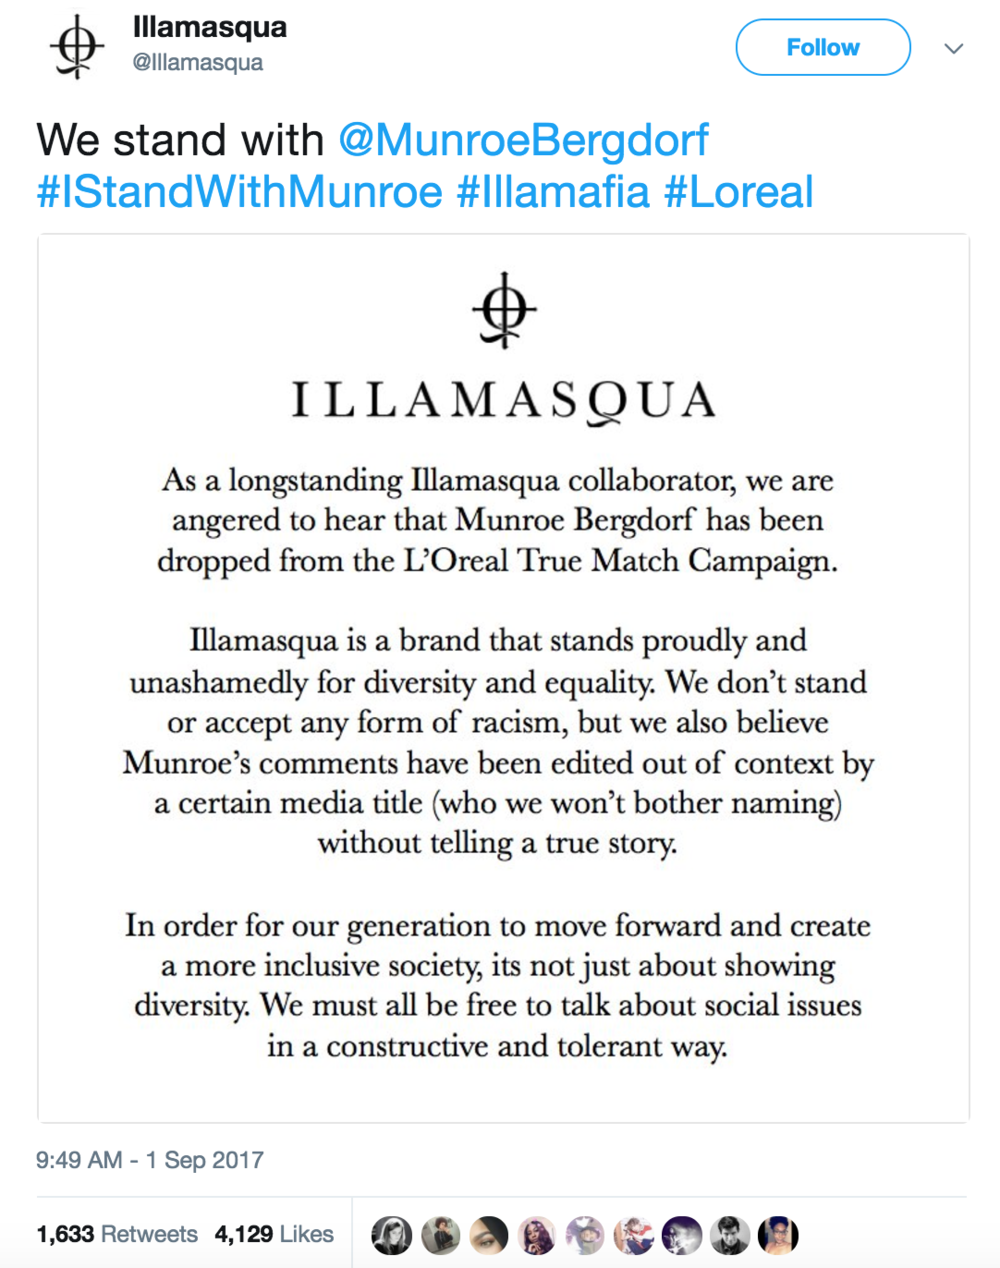 Illamasqua stands behind Munroe Bergdorf in early September